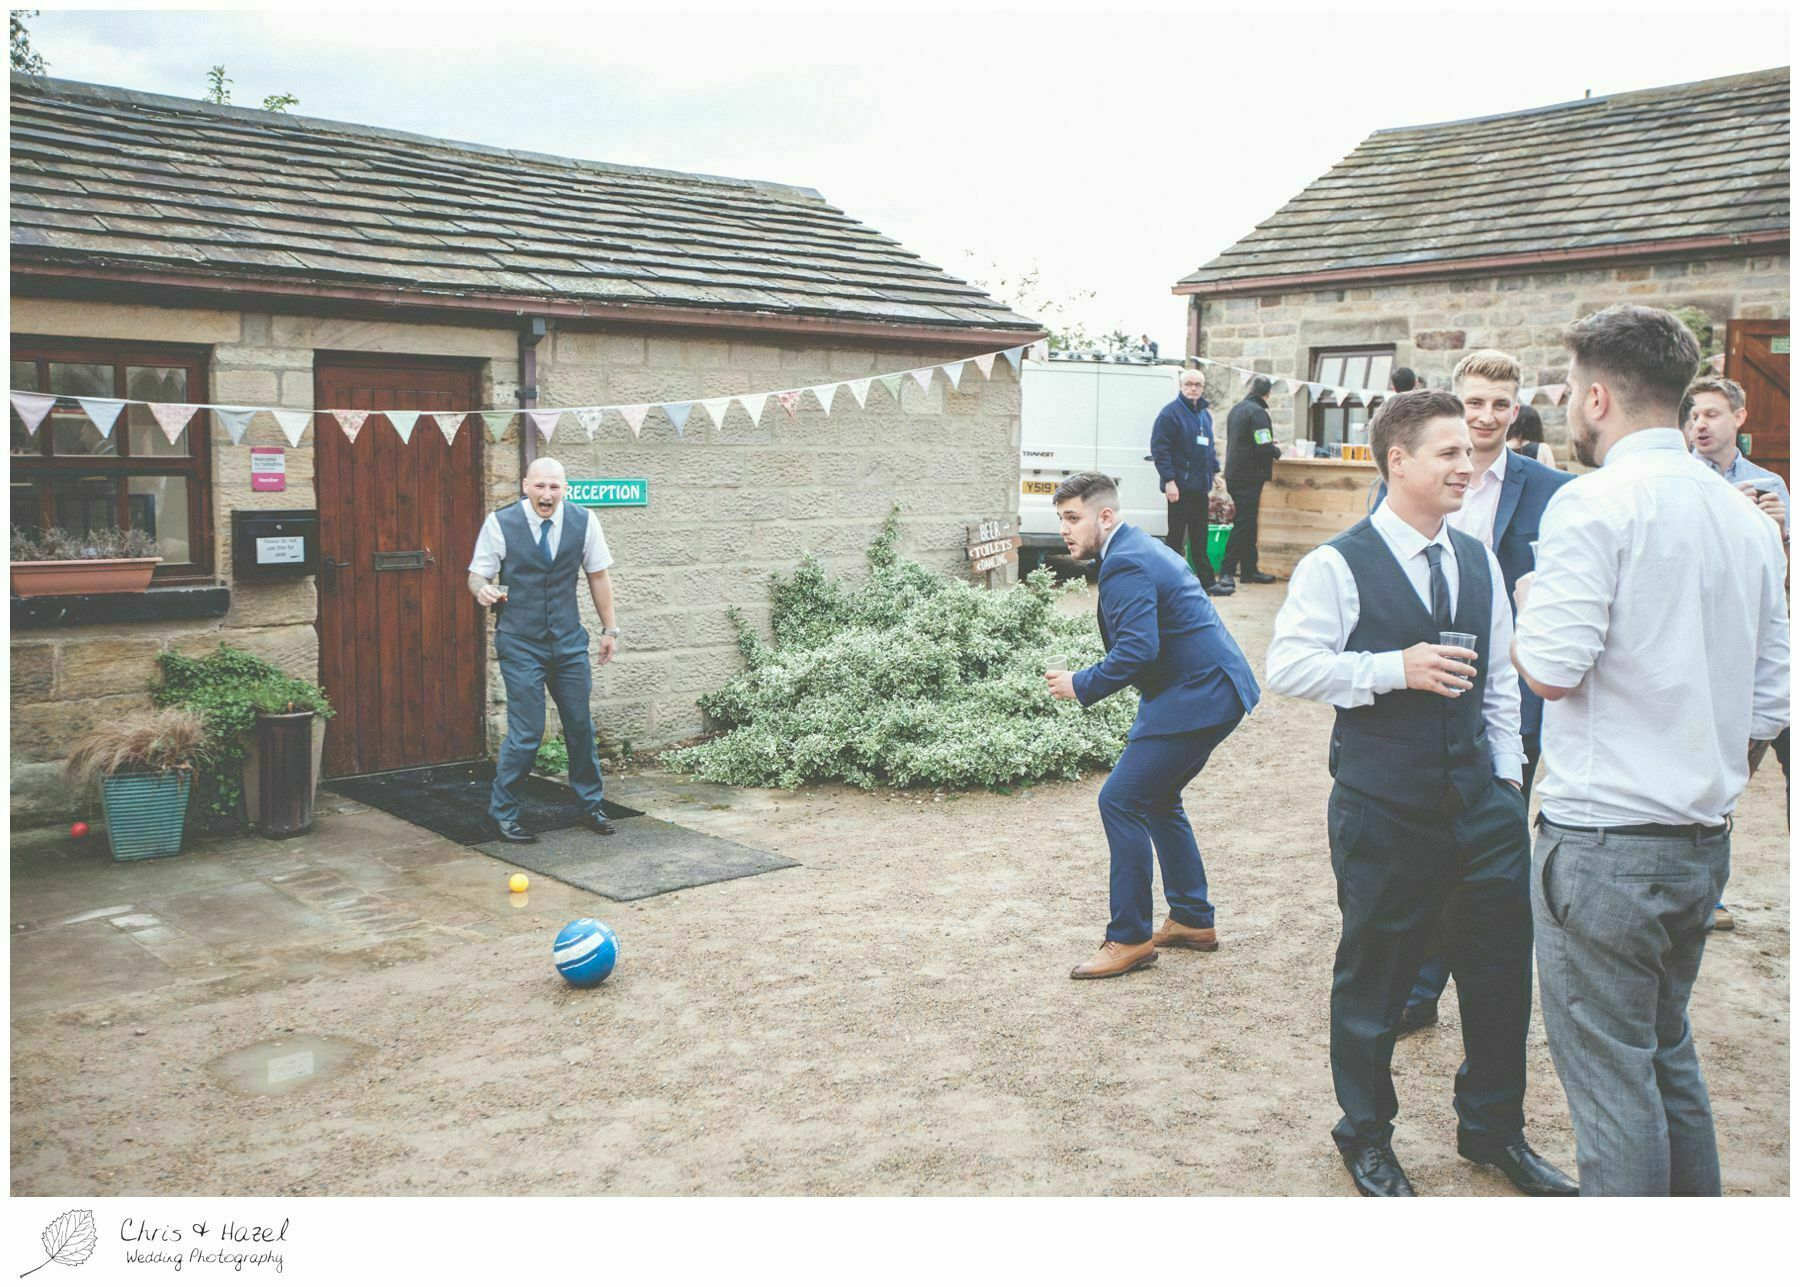 wedding games, football, wood wedding theme, eco wedding, love letters, wedding, Eccup Wedding Photographer, Lineham Farm, Wedding Photography Leeds, Chris and Hazel Wedding Photography, Richard Wyatt, Laura Kelly